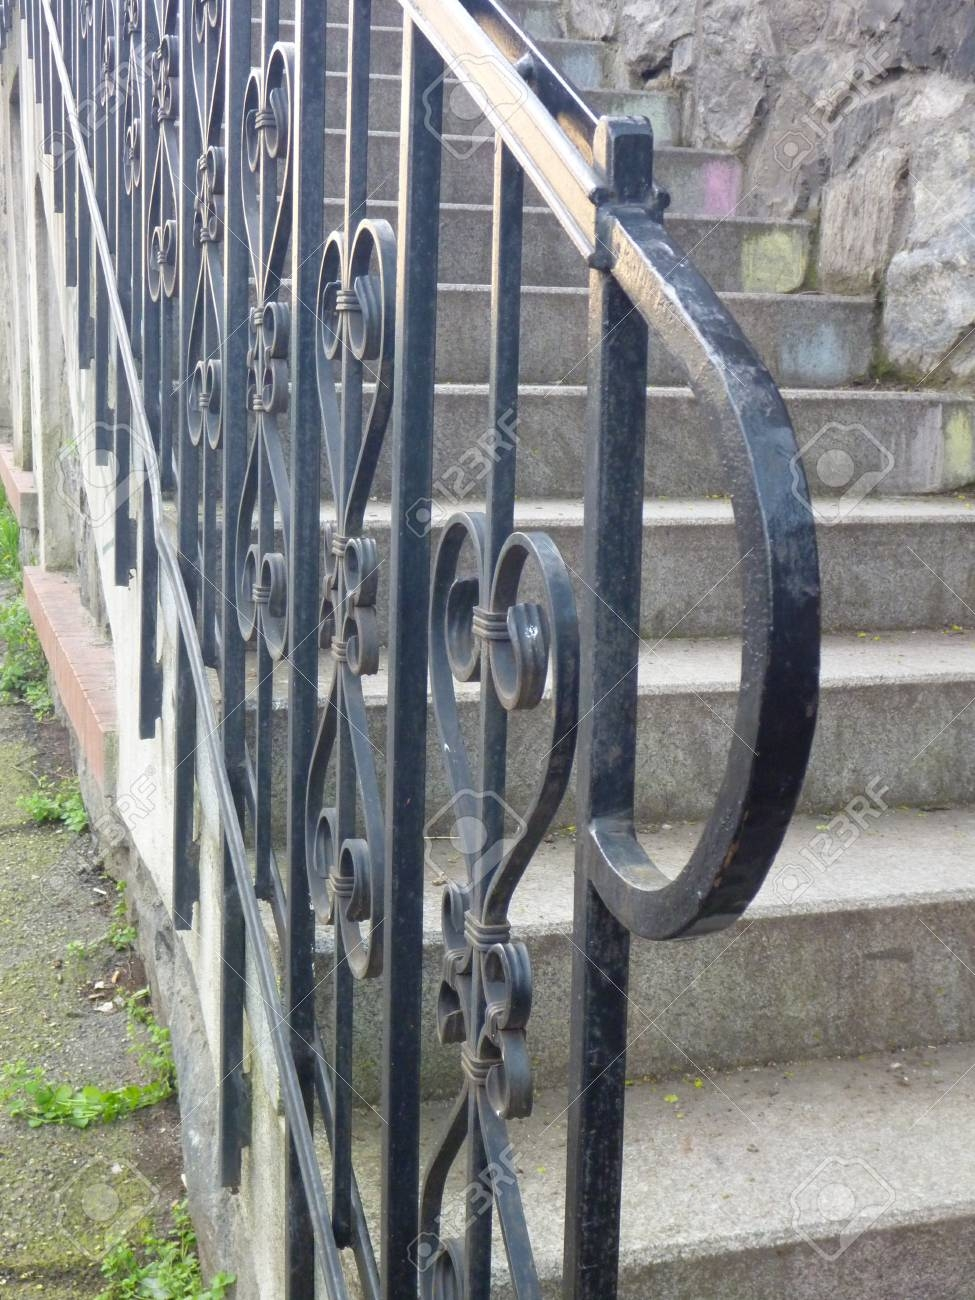 A Detail Of Curved Metal Railing At Outdoor Stairs Stock Photo | Metal Railings For Outdoor Steps | Railing Ideas | Front Porch Railings | Concrete Steps | Wrought Iron Railings | Railing Kits